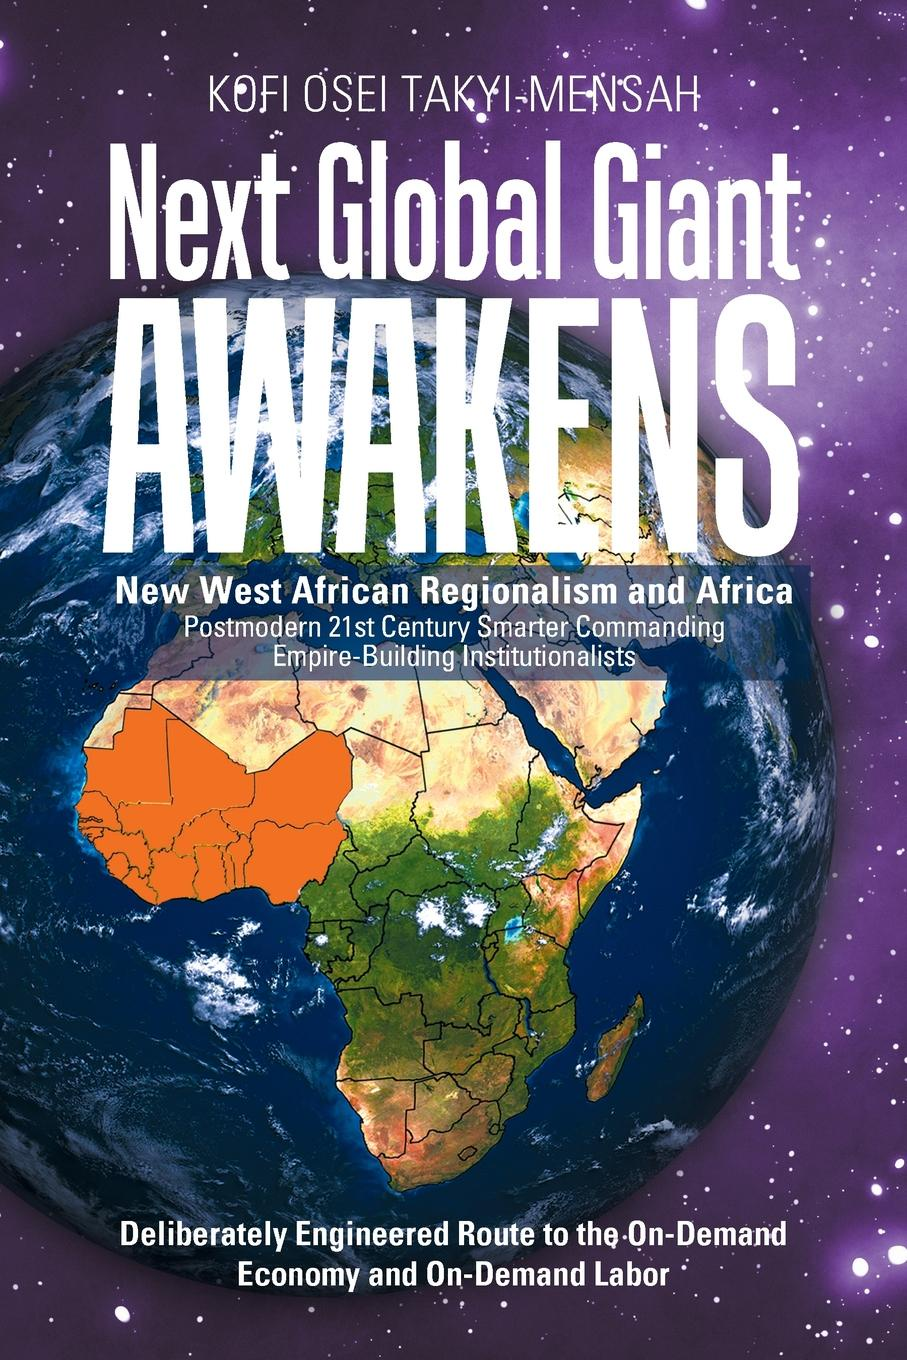 Kofi Osei Takyi-Mensah Next Global Giant Awakens. New West African Regionalism and Africa john thompson b merchants of culture the publishing business in the twenty first century